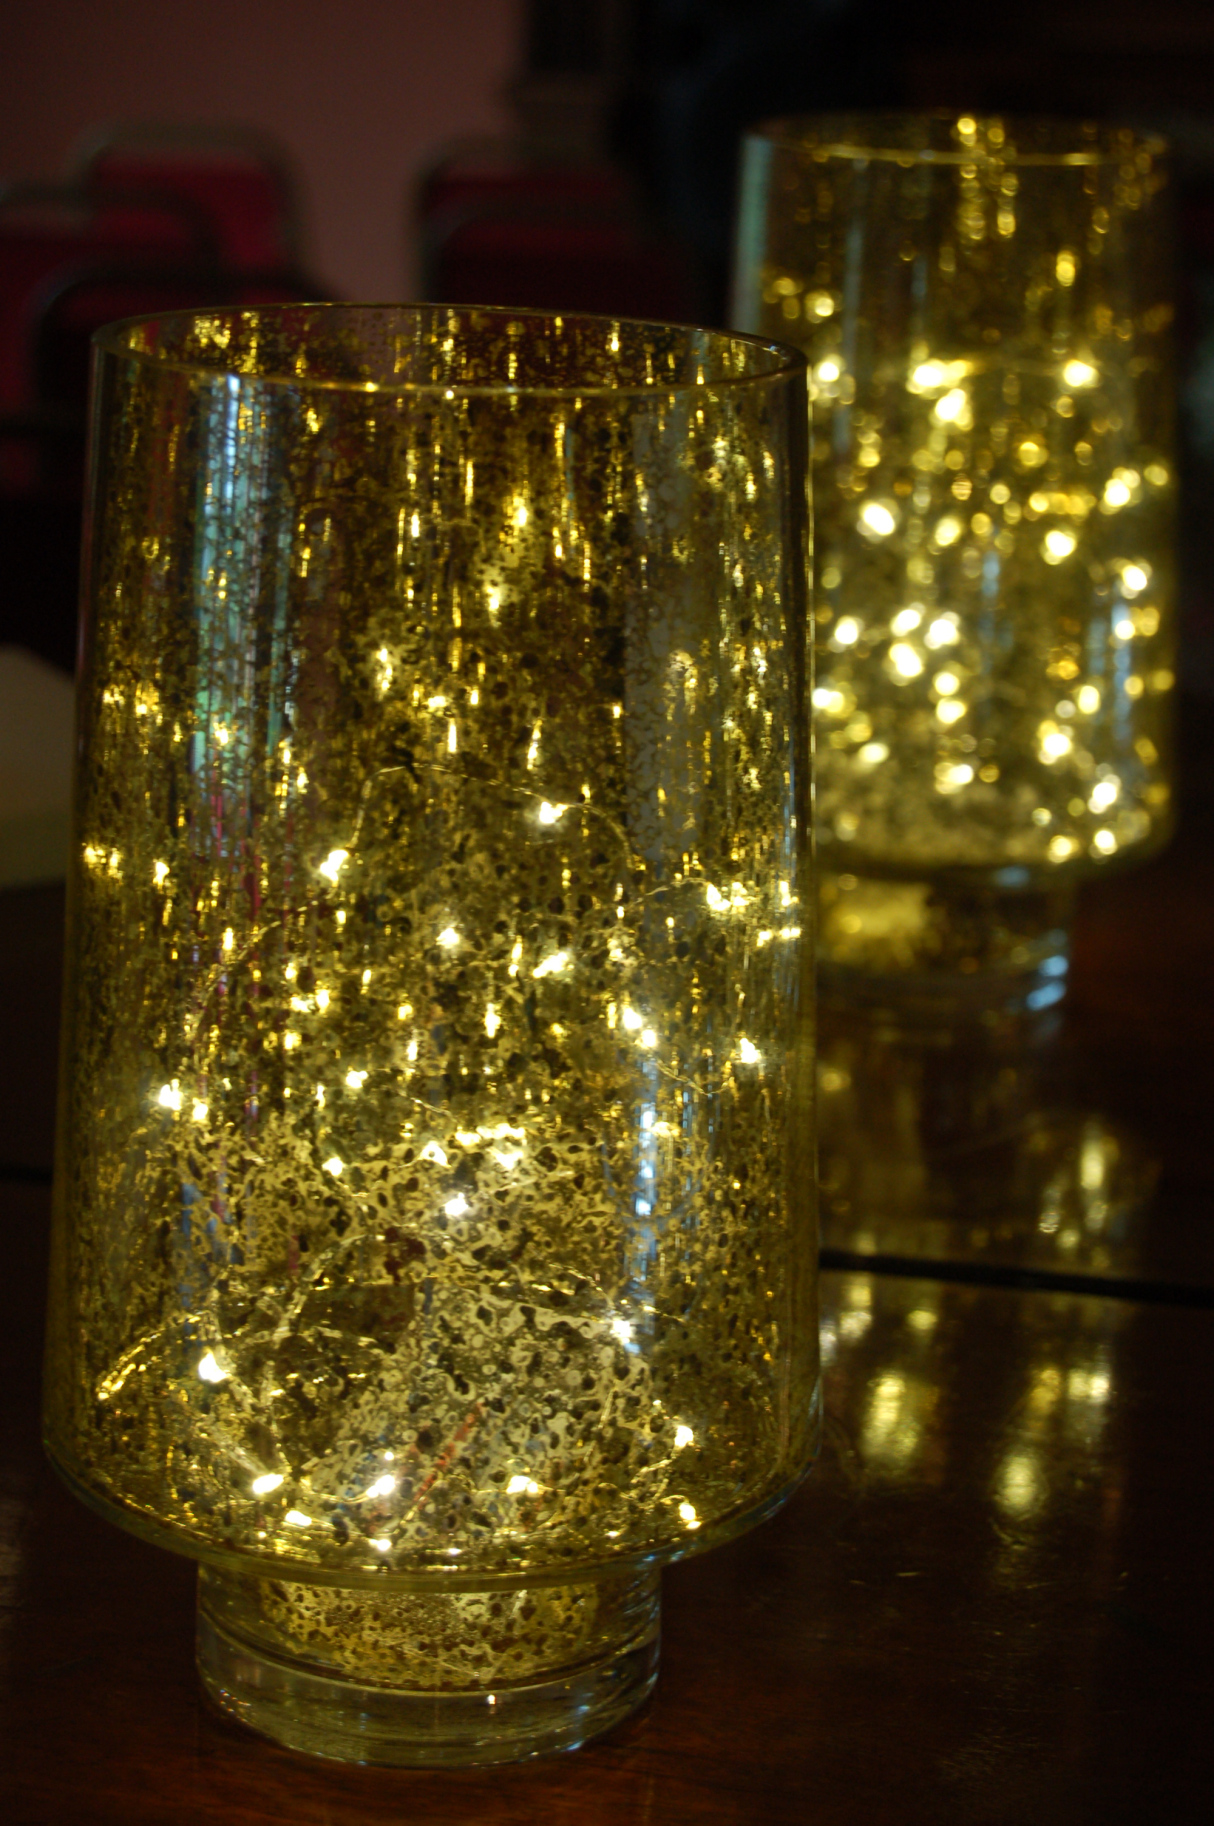 Hurricane Vases lit with strings of twinkling lights